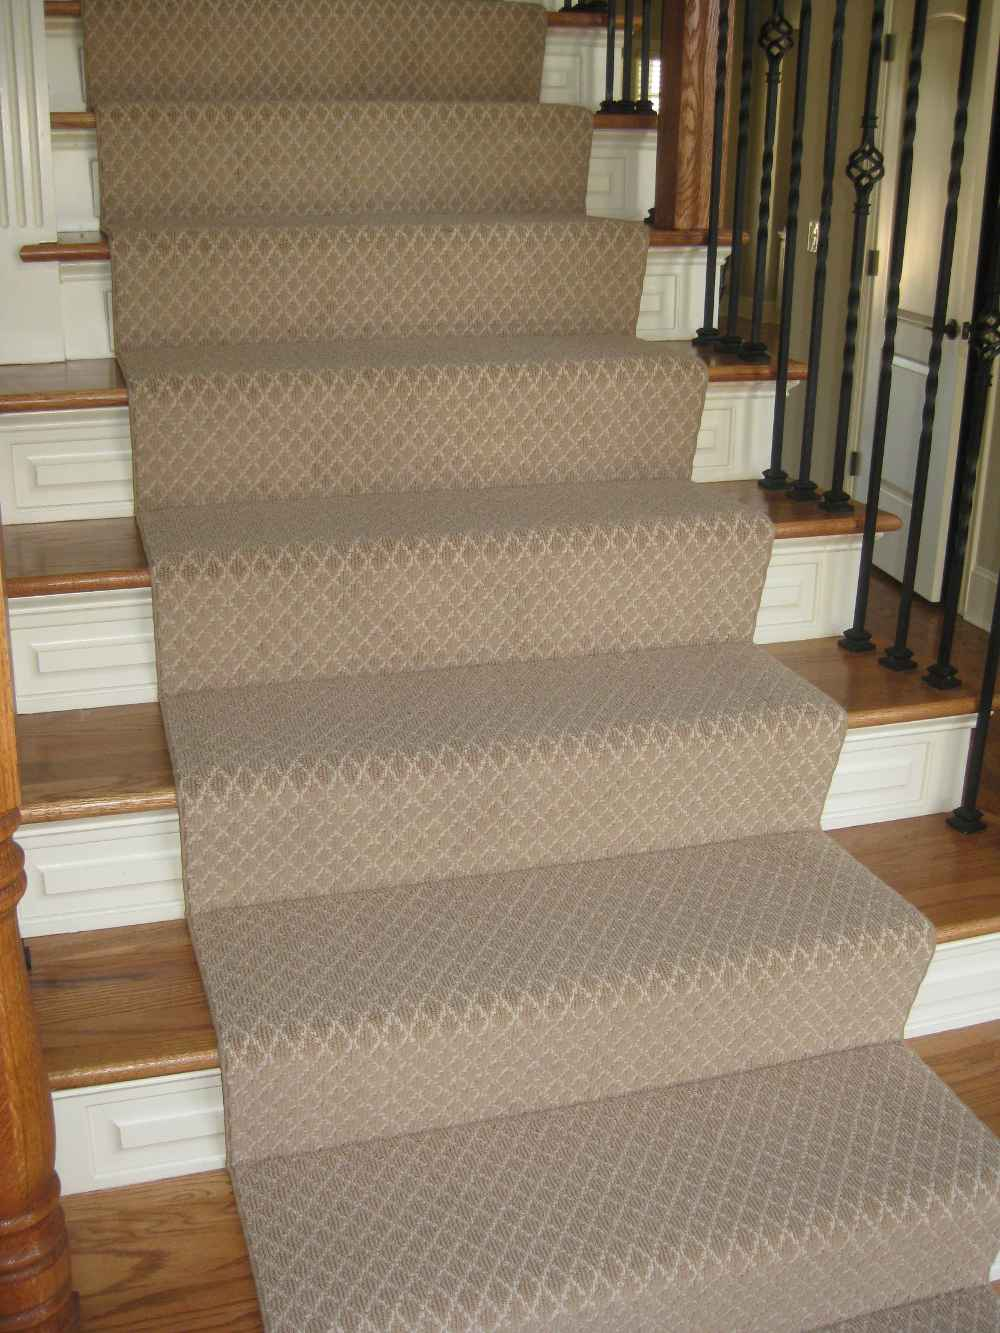 carpet runner for stairs photo - 1